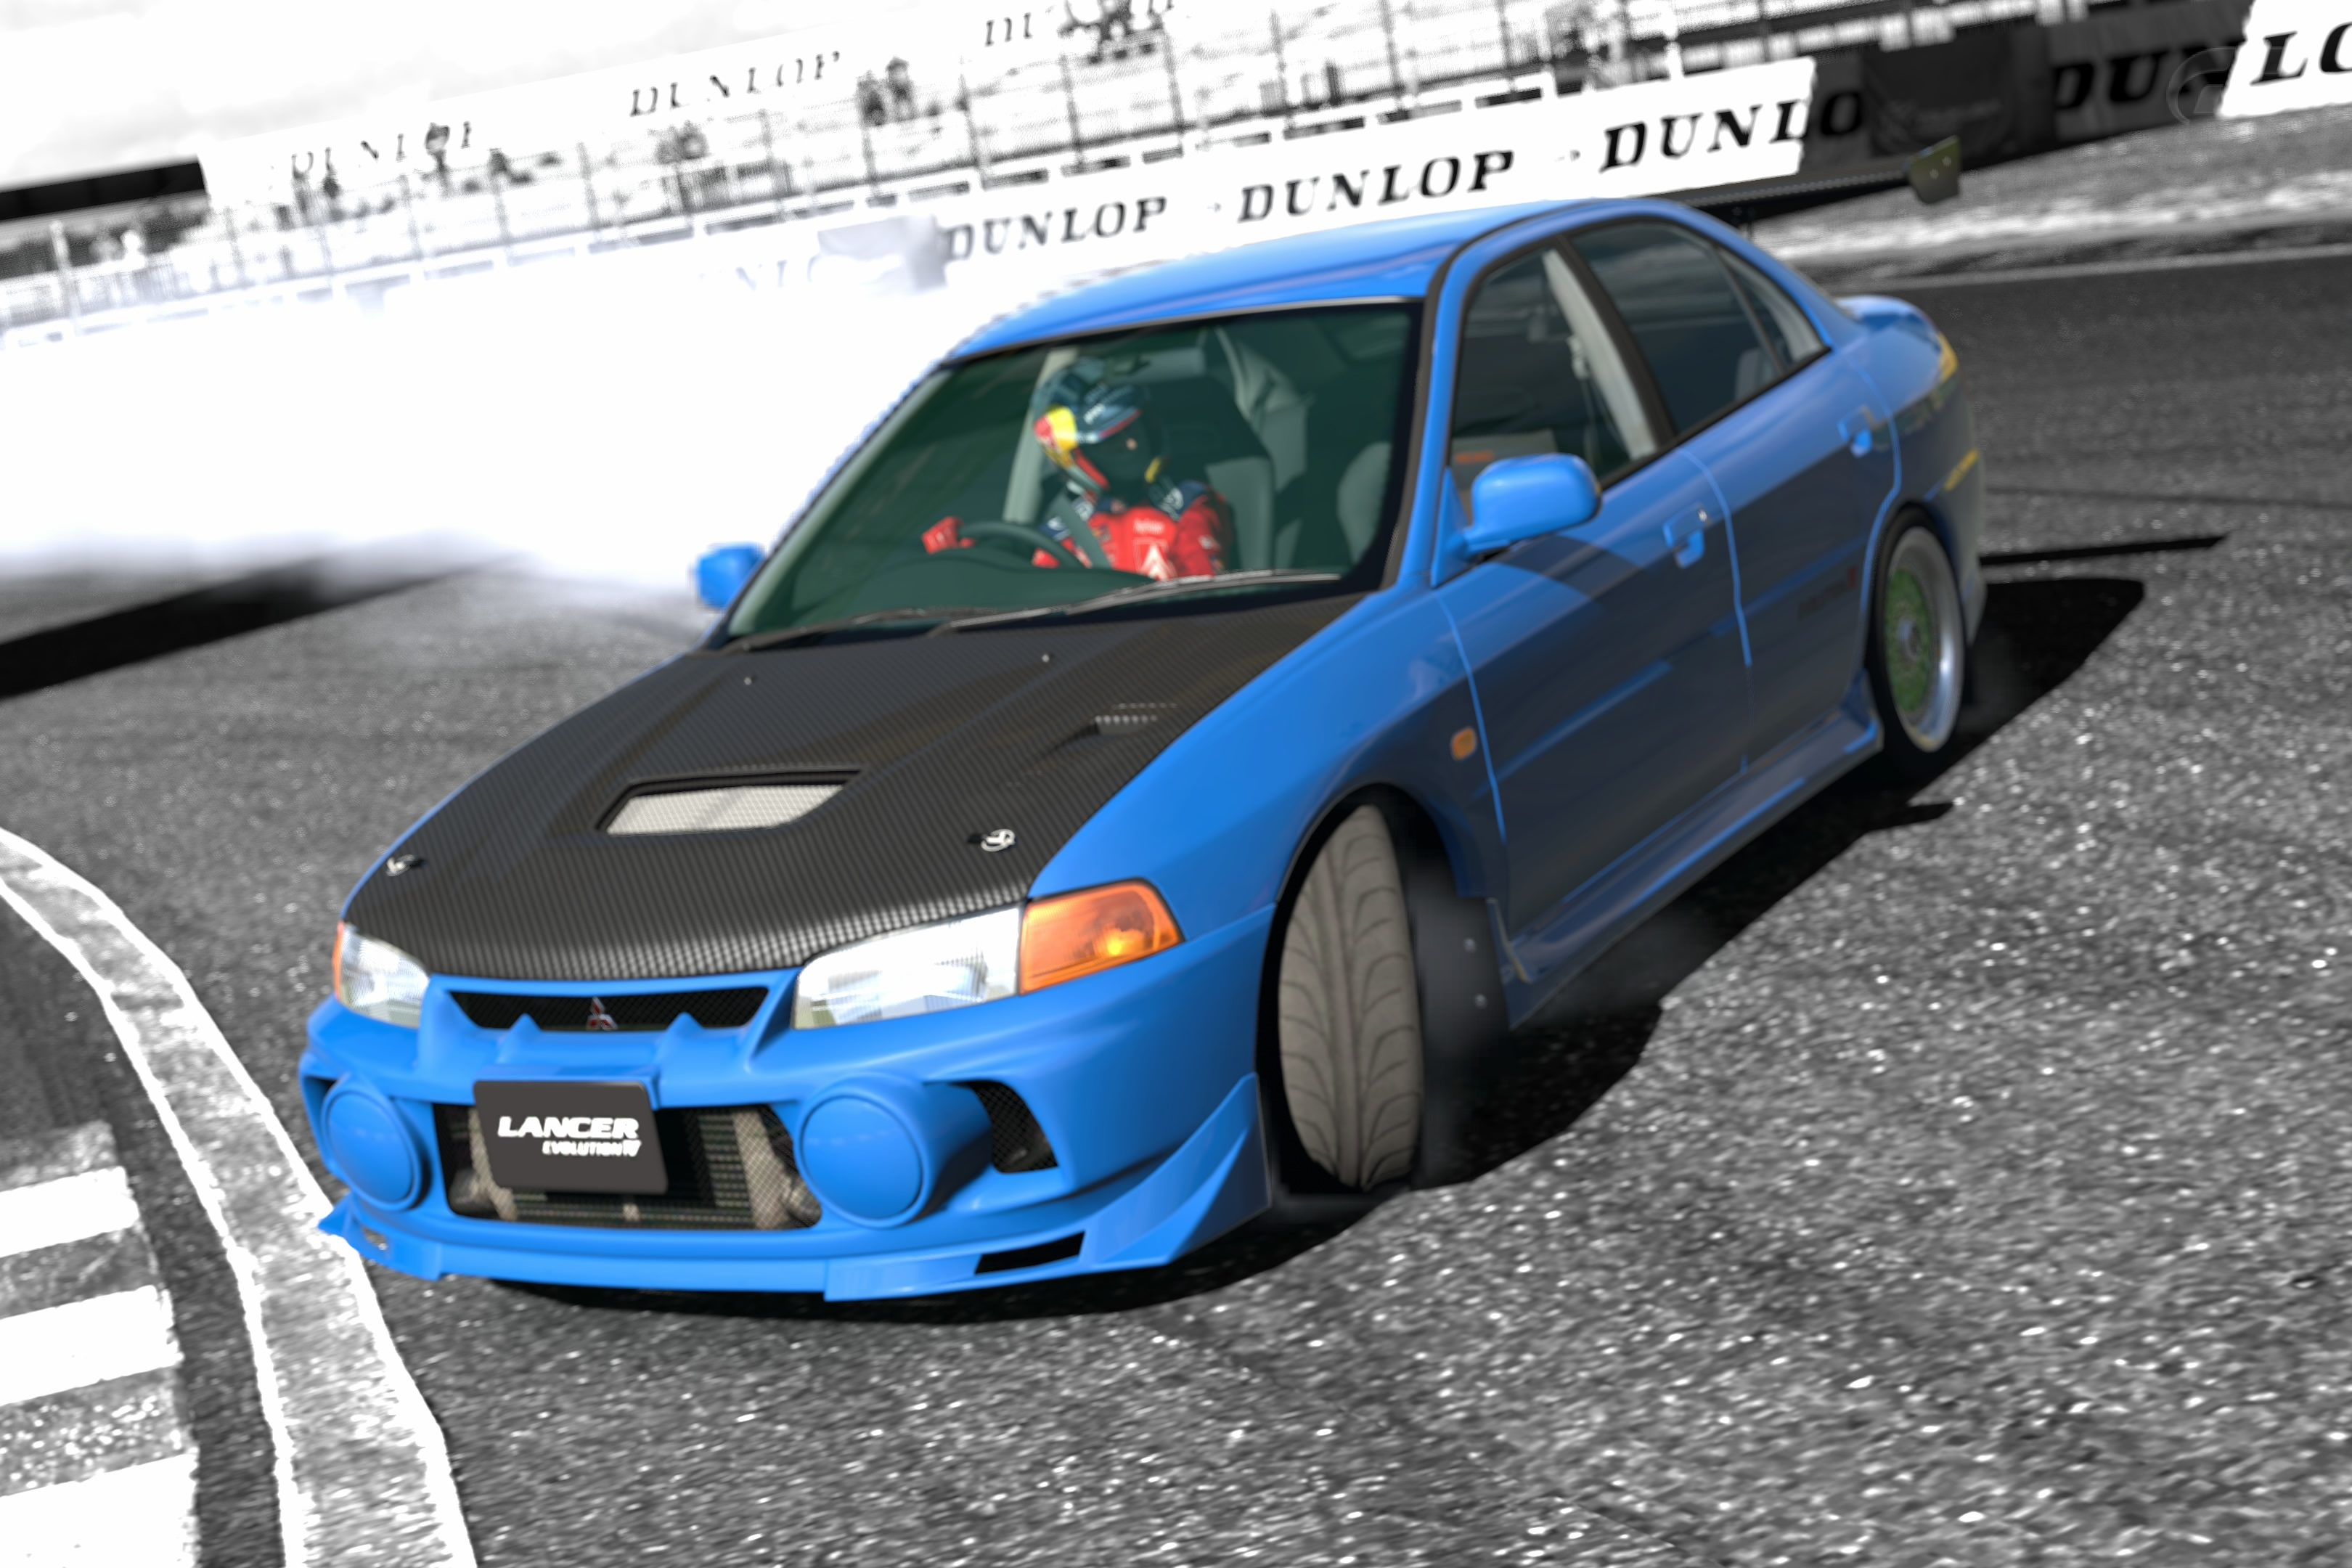 Evo IV '96 - Drift Car_1.jpg